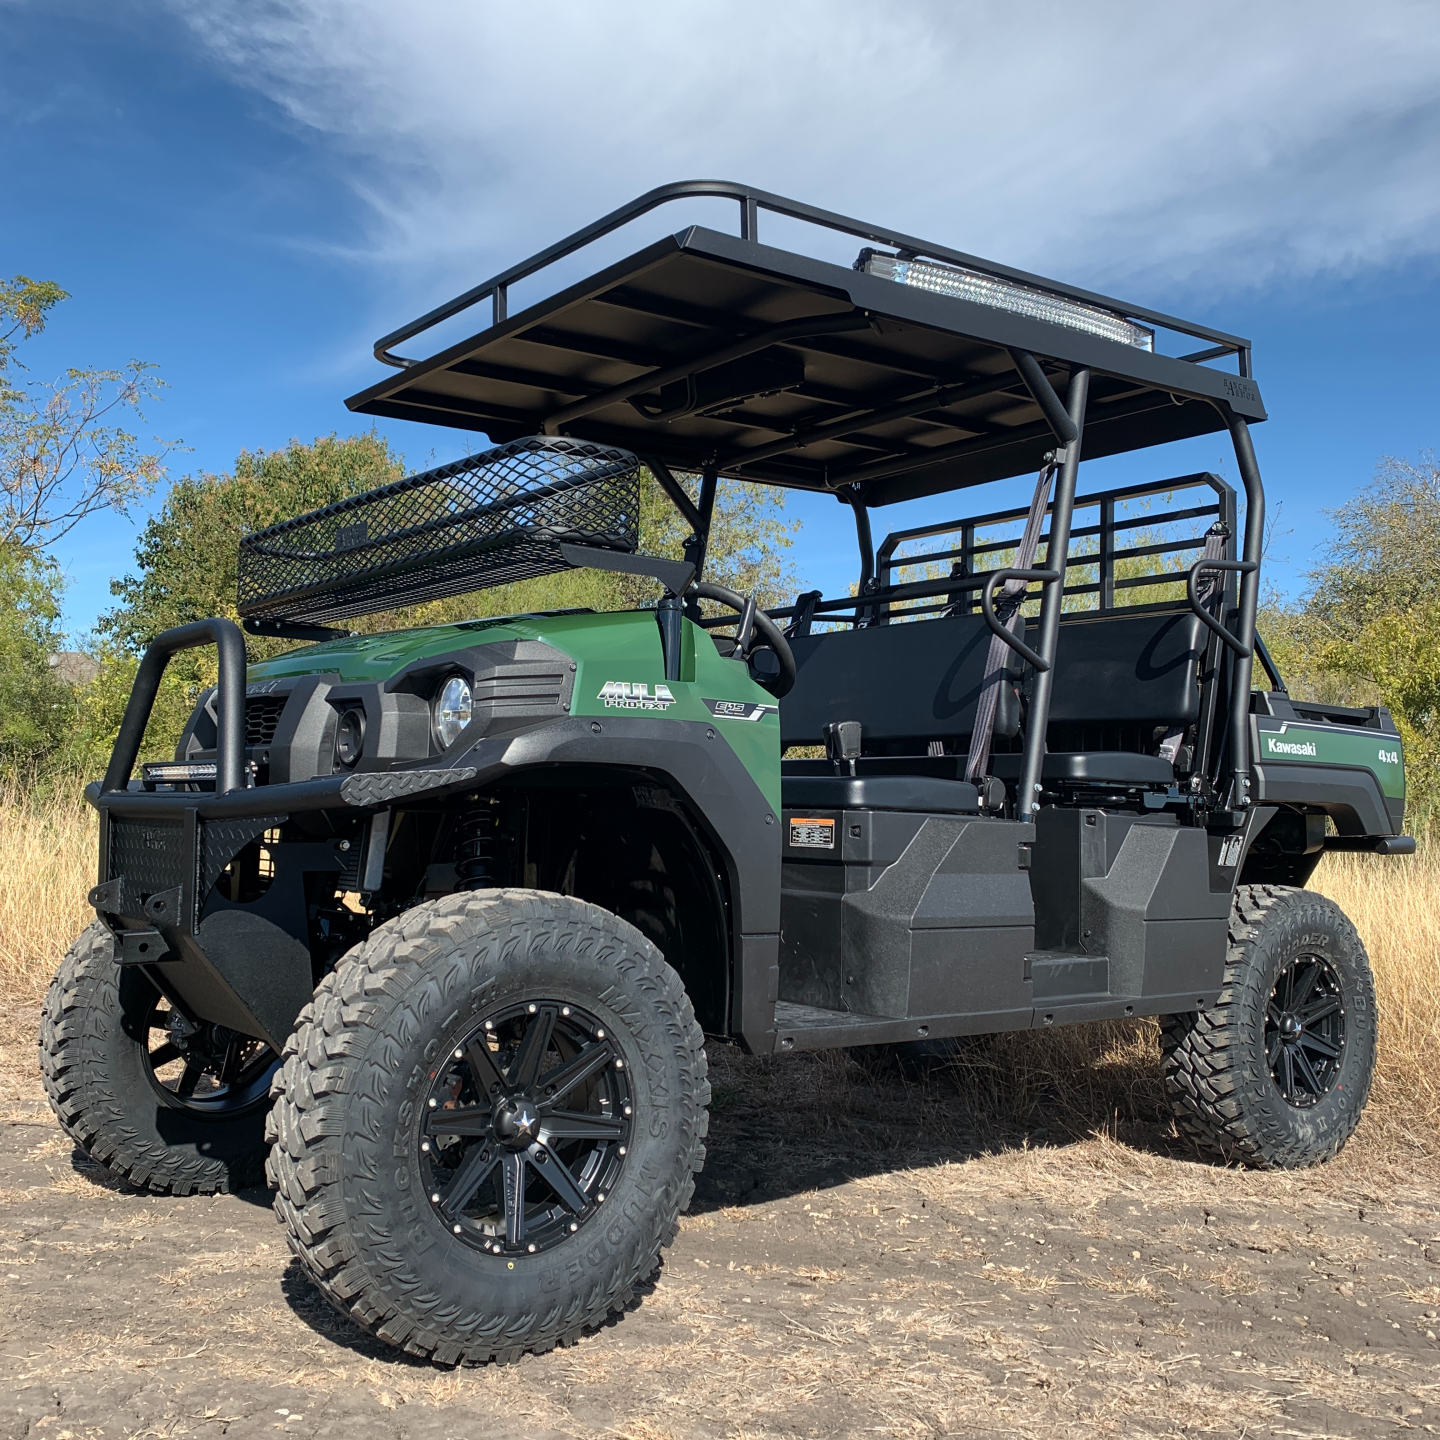 kawasaki-mule-pro-fxt-custom-roll-frame-with-ranch-armor-accessories.png